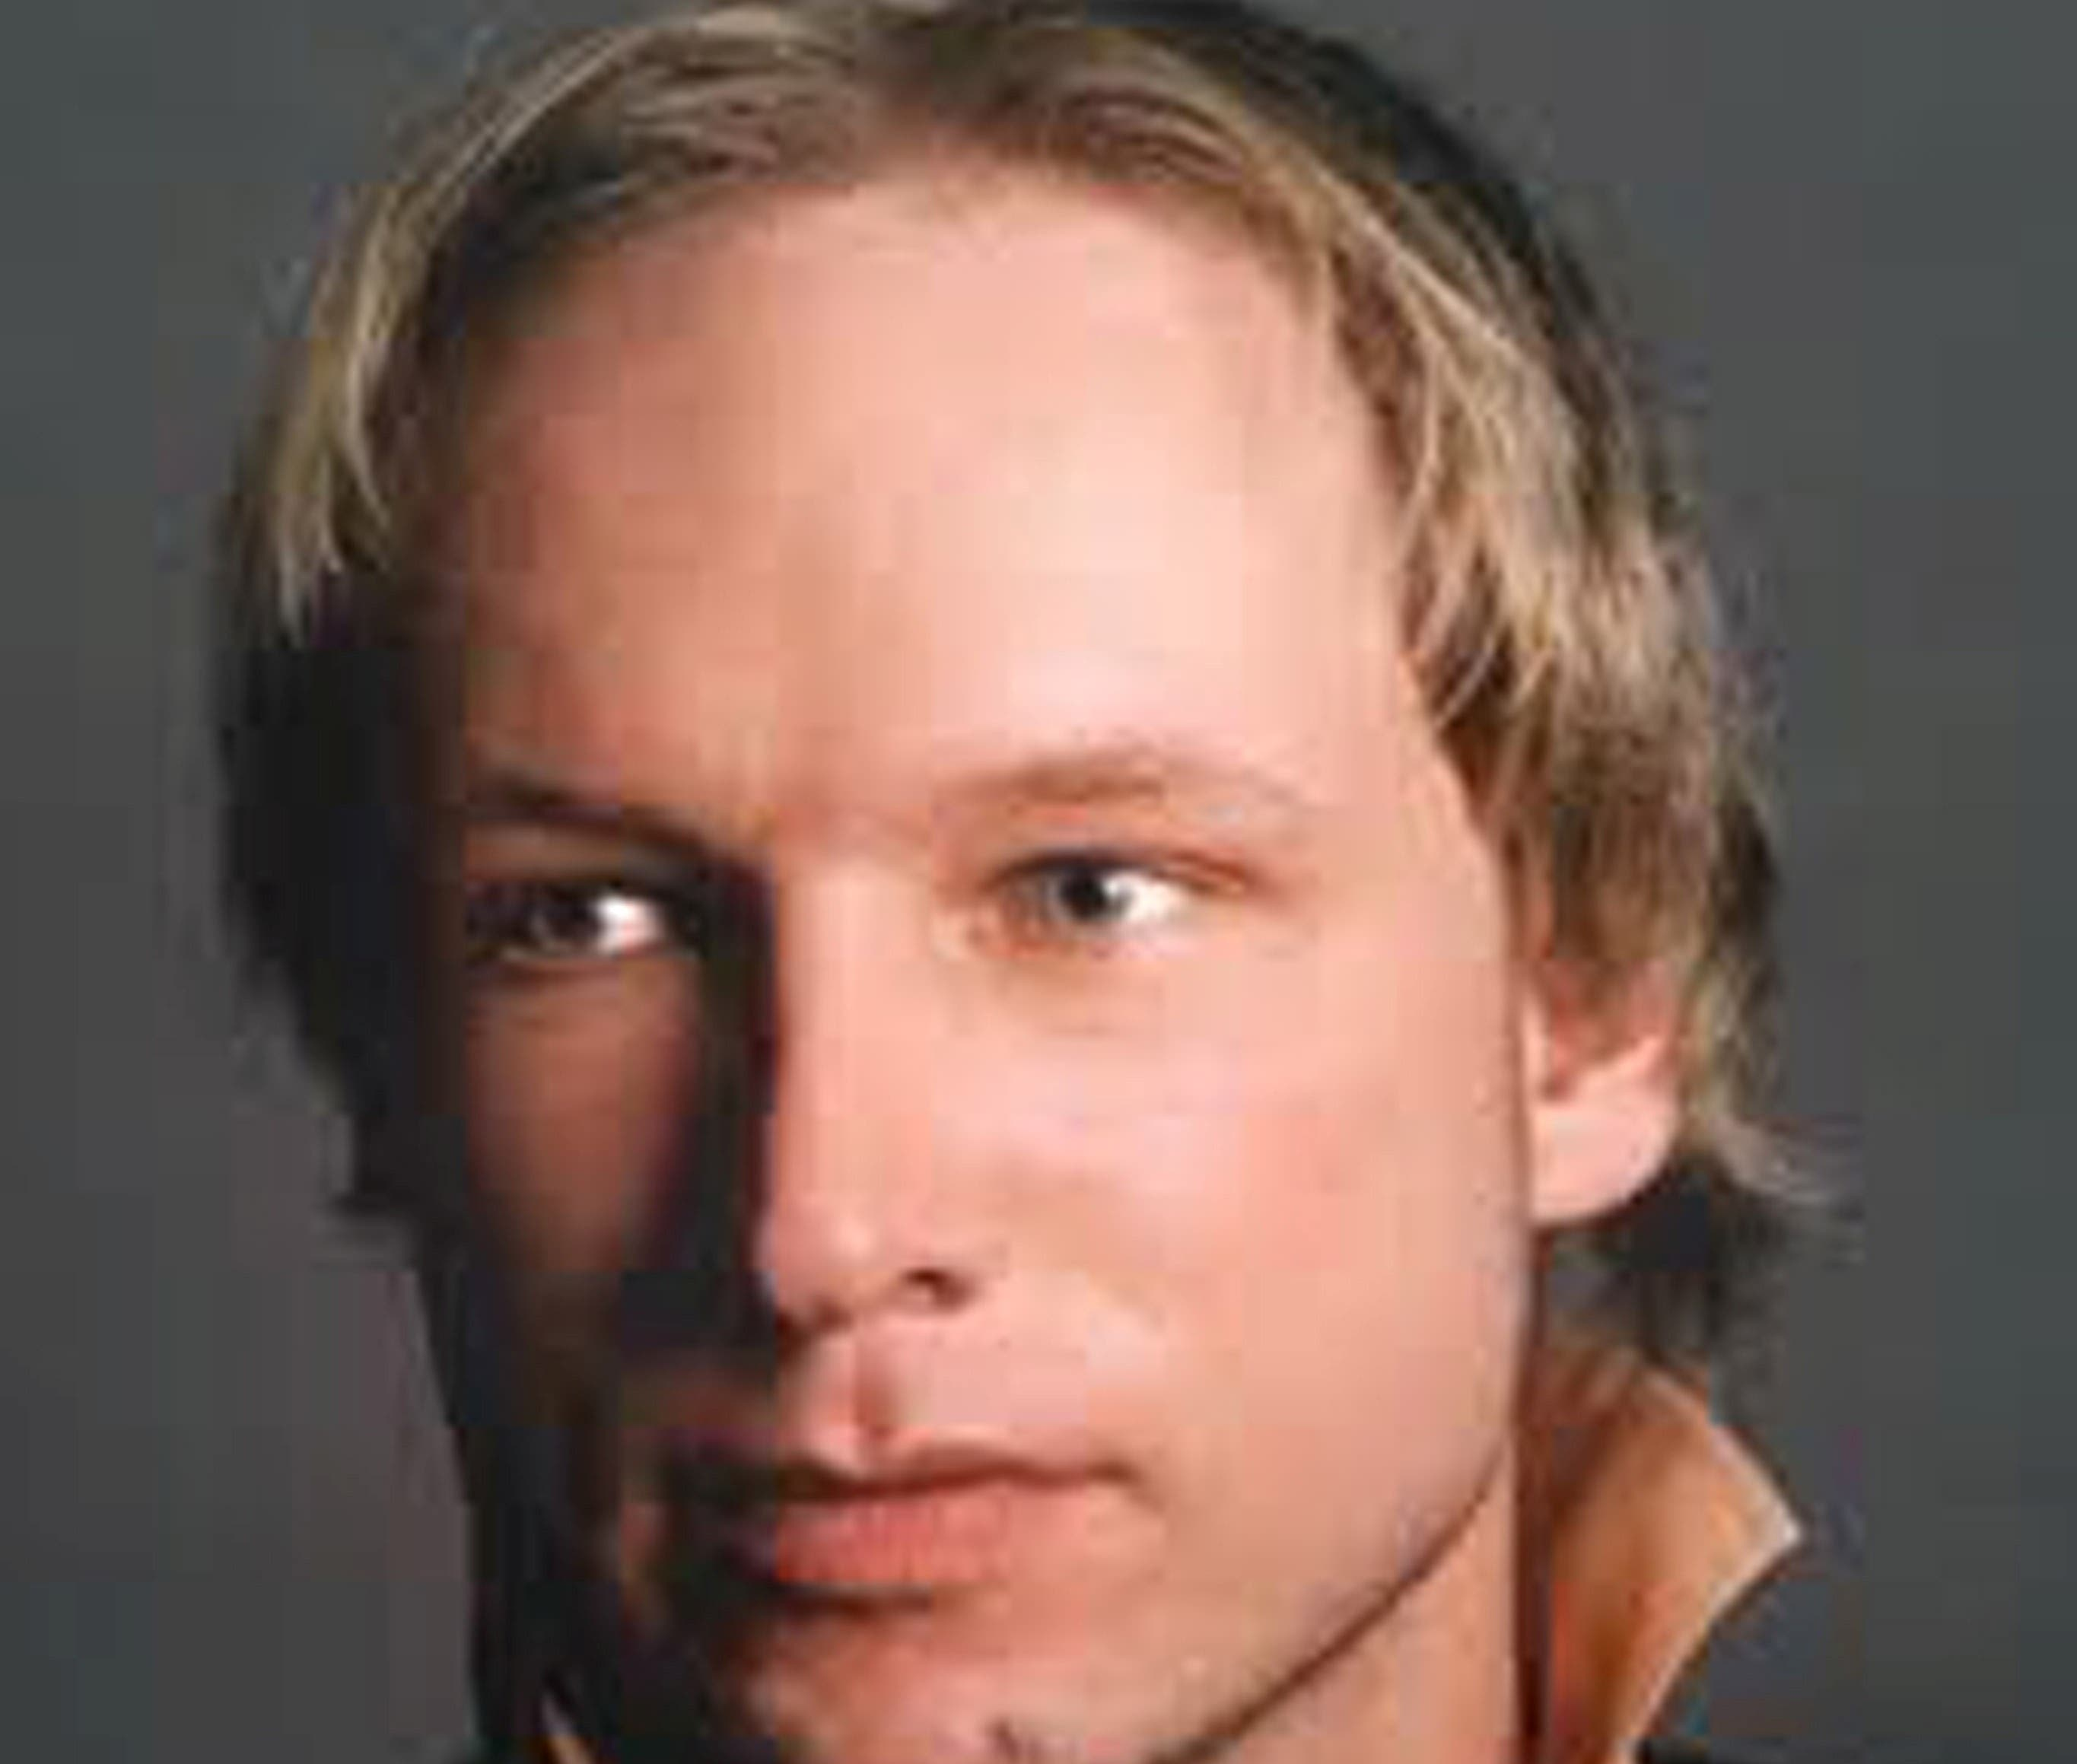 Anders Behring Breivik is the tall blonde suspect behind the shooting and bombing that devastated Oslo and Utoya. Said to